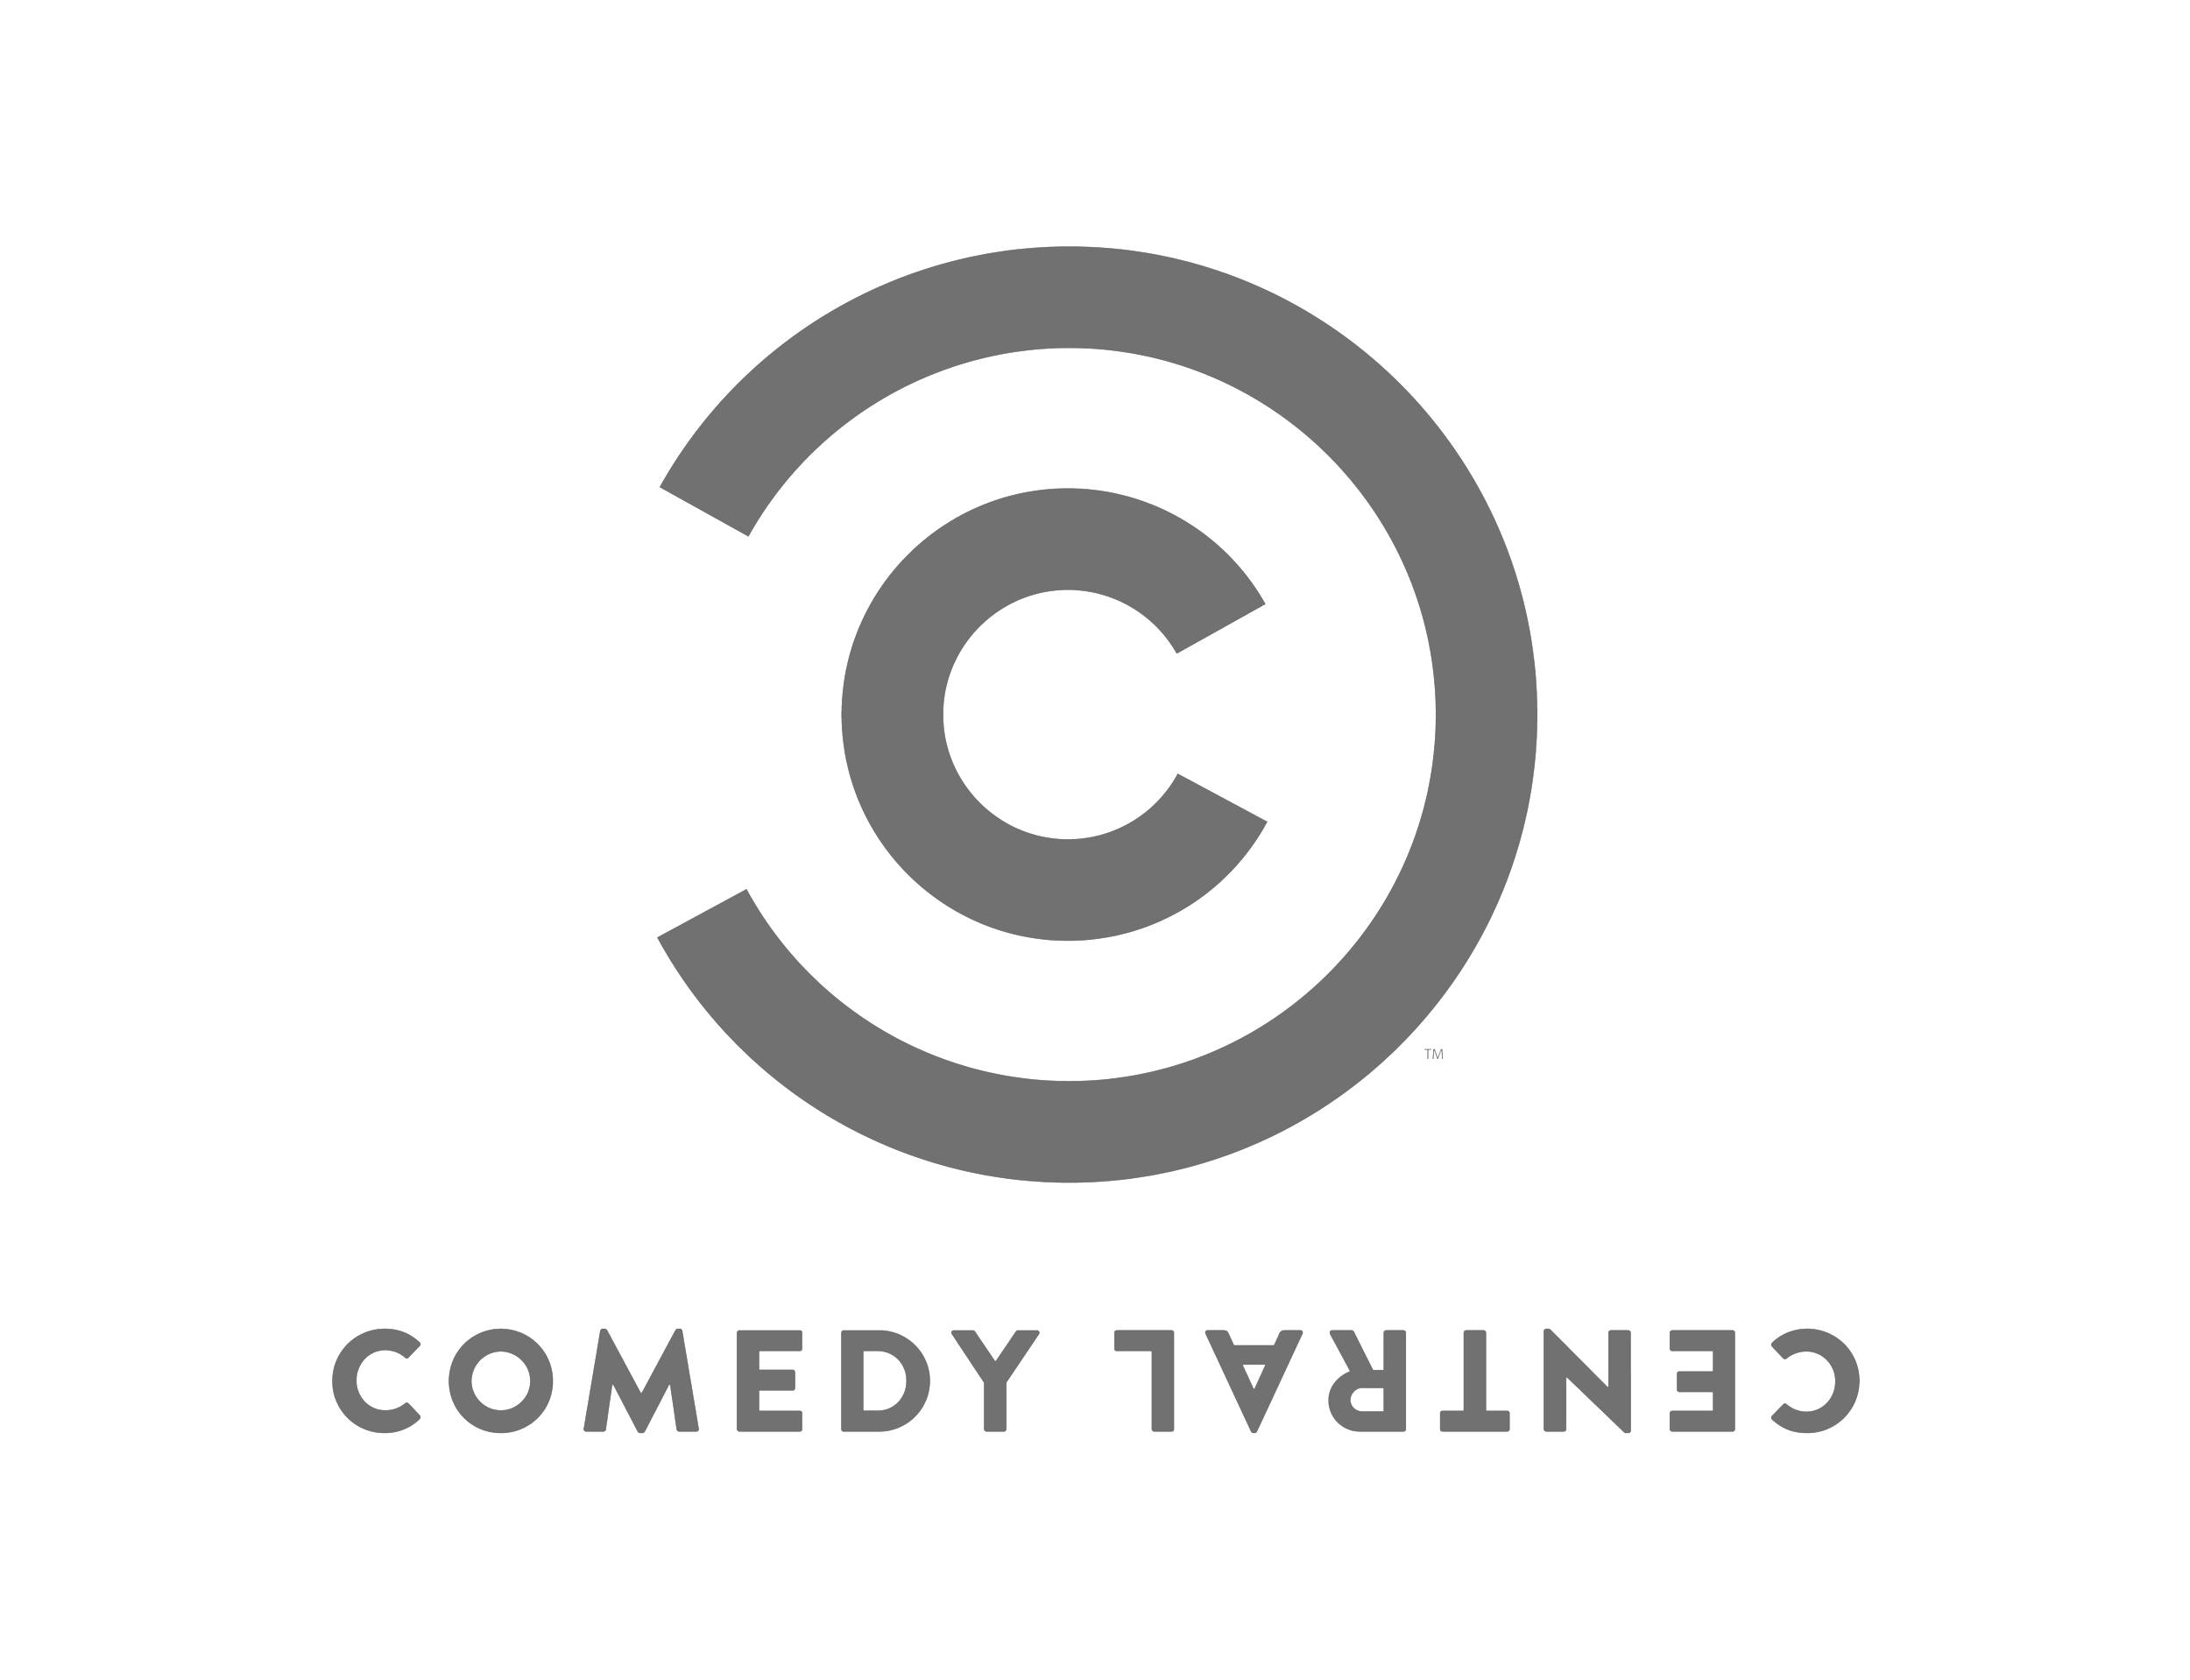 Comedy_Central_Logo_2011_vertikal.png